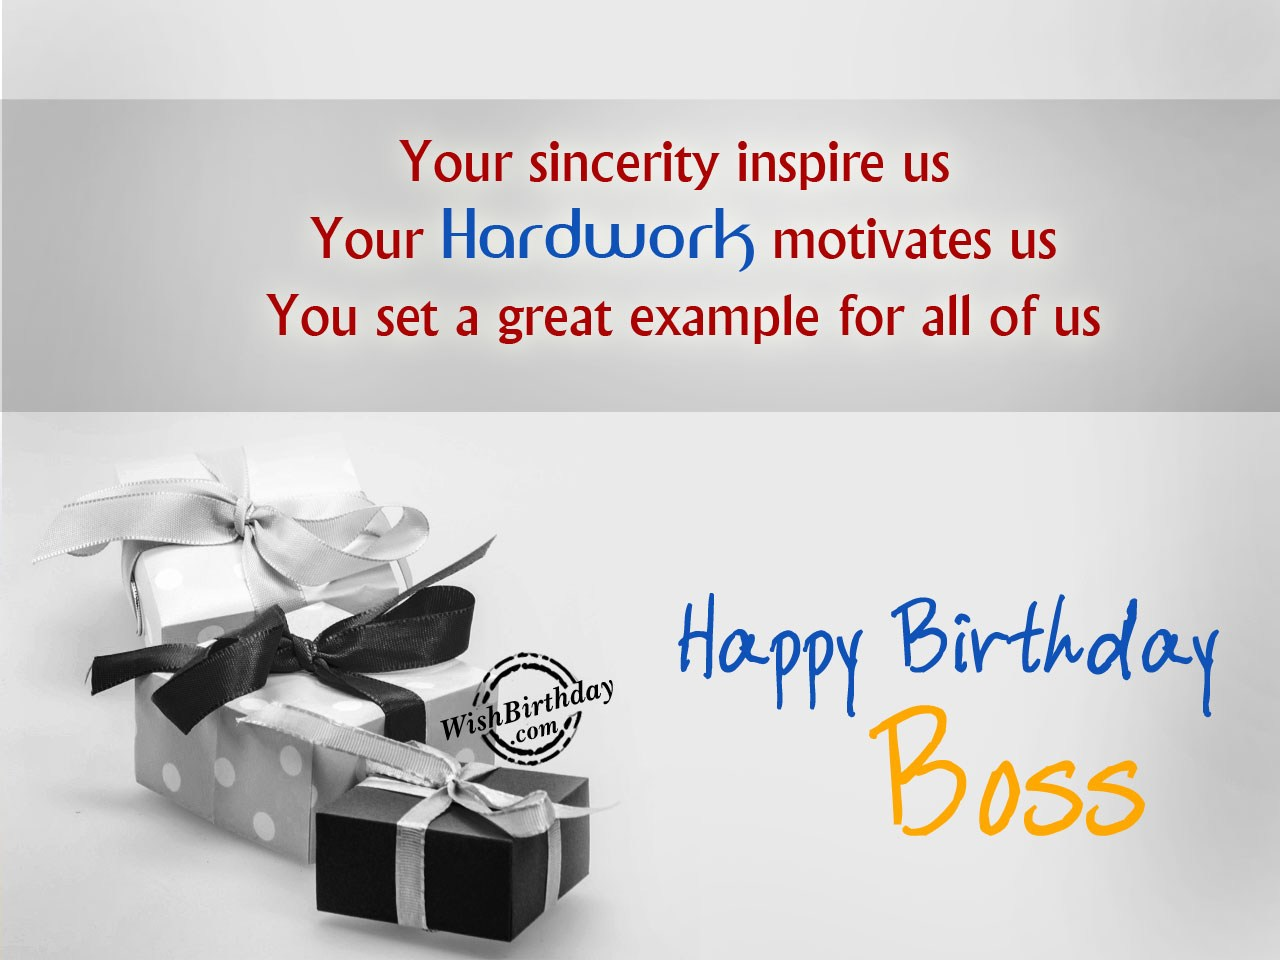 Birthday wishes for boss birthday images pictures your sincerity inspire us m4hsunfo Gallery